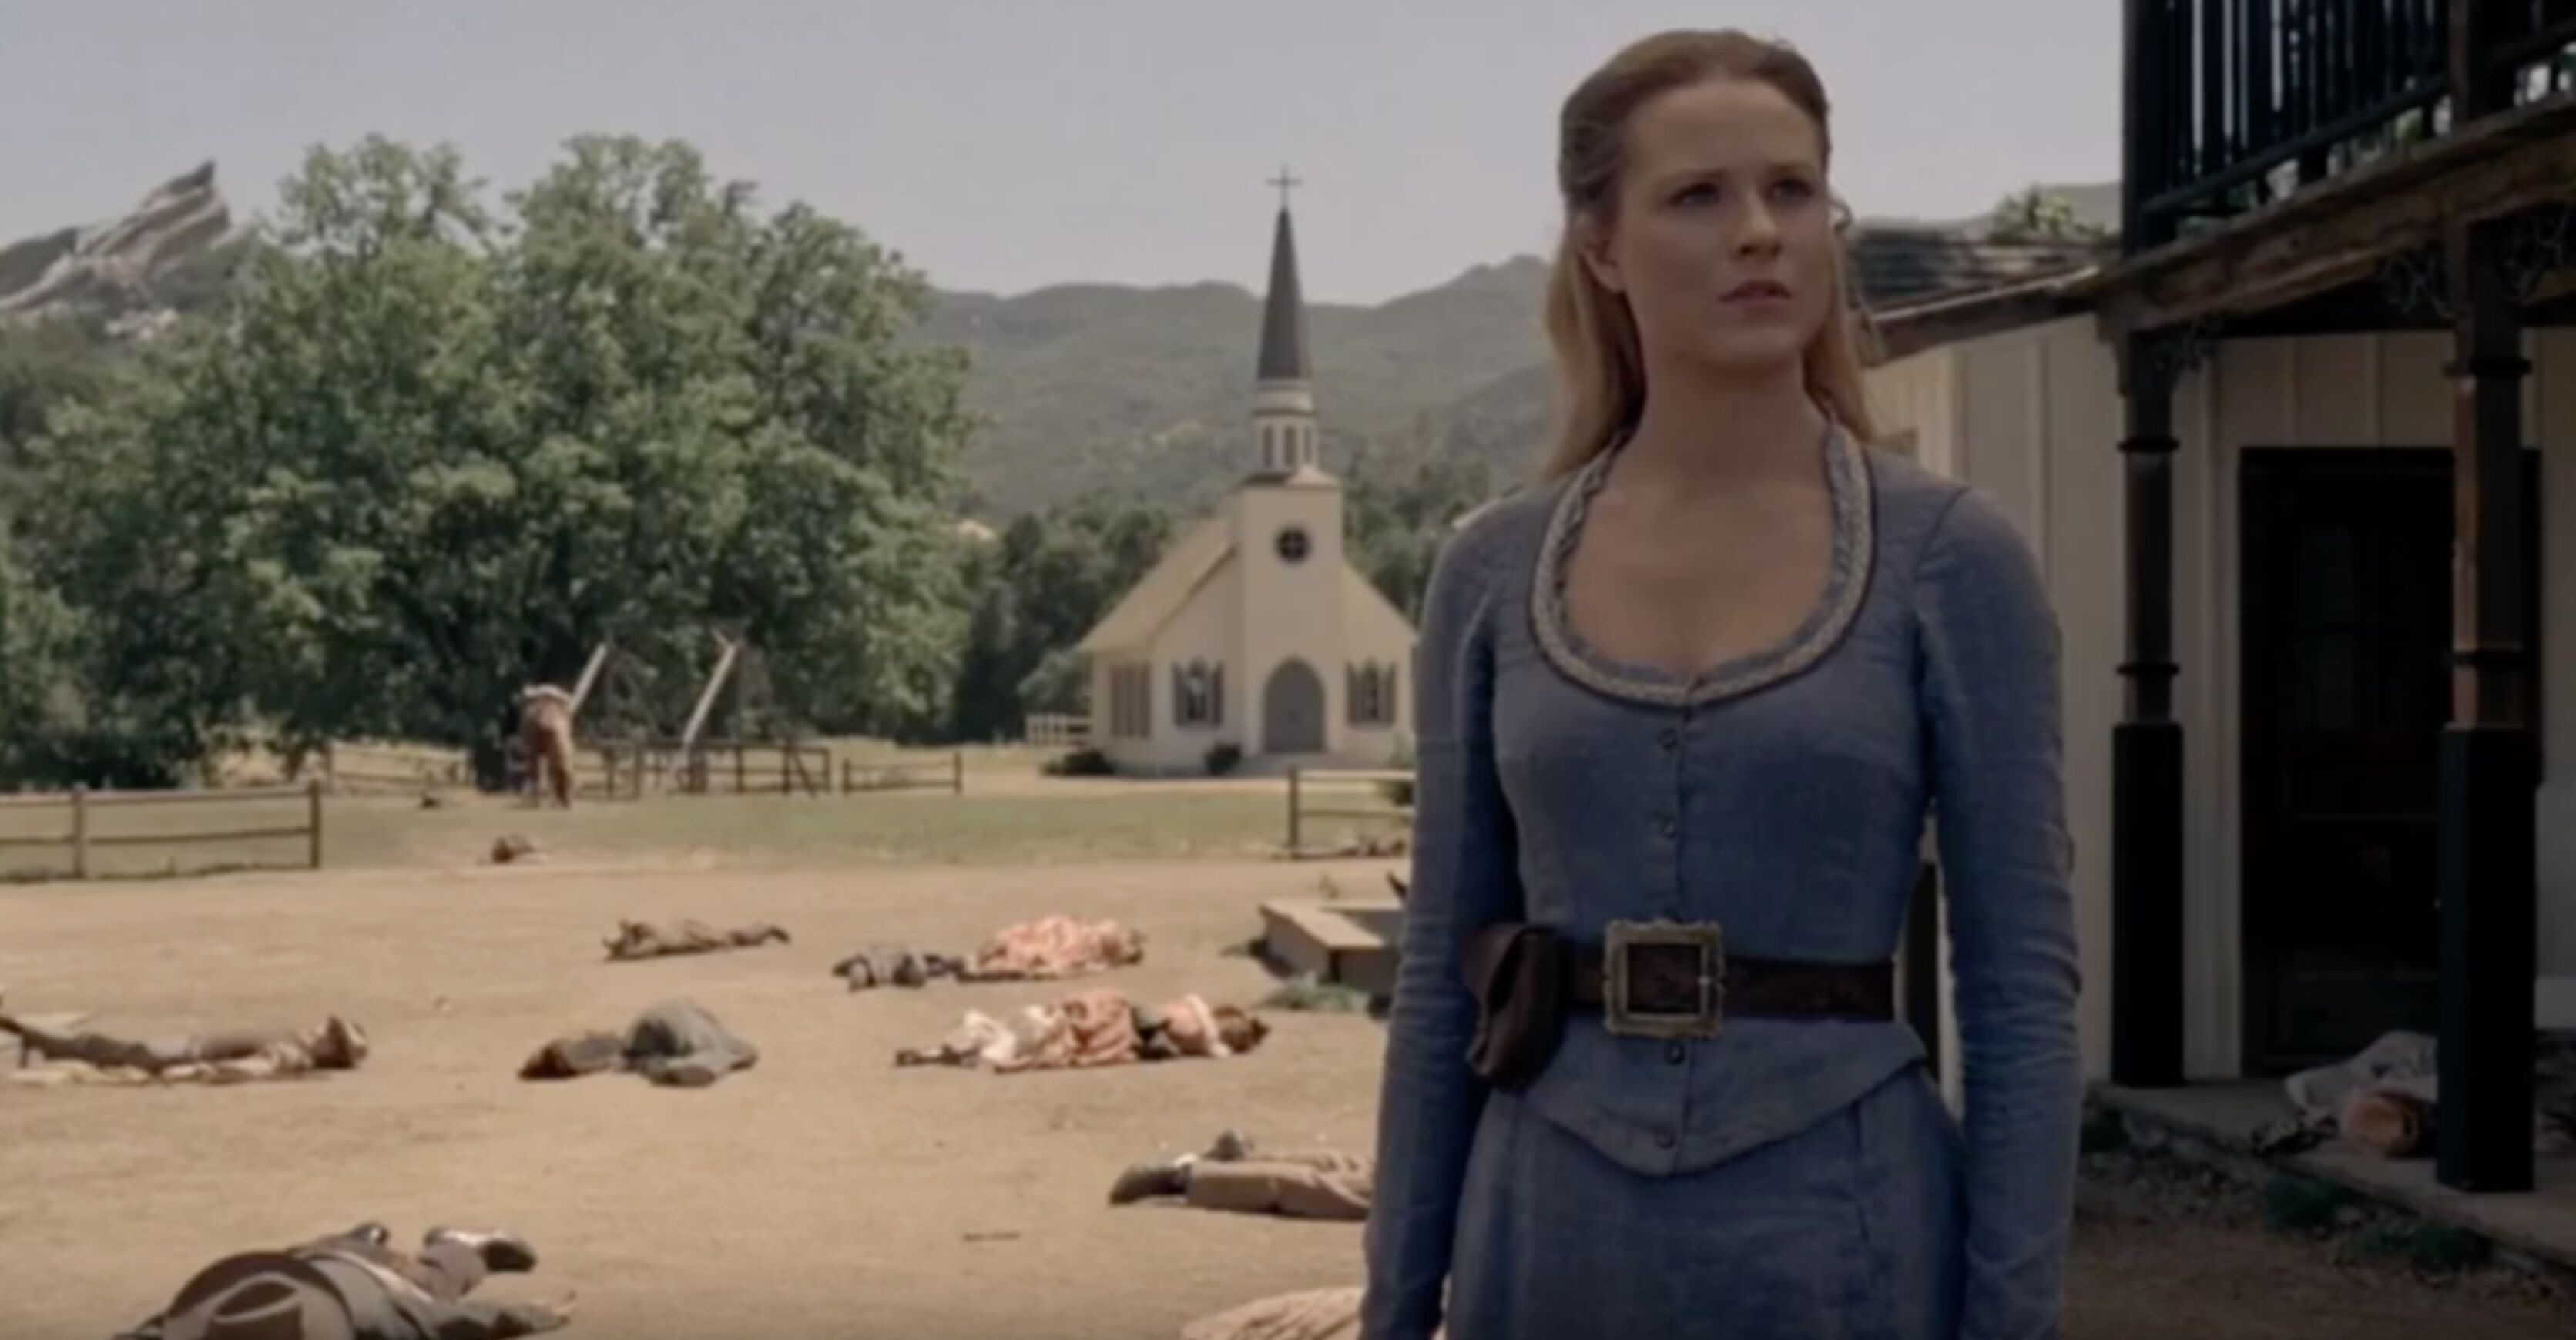 Iconic Westworld set survives California wildfire